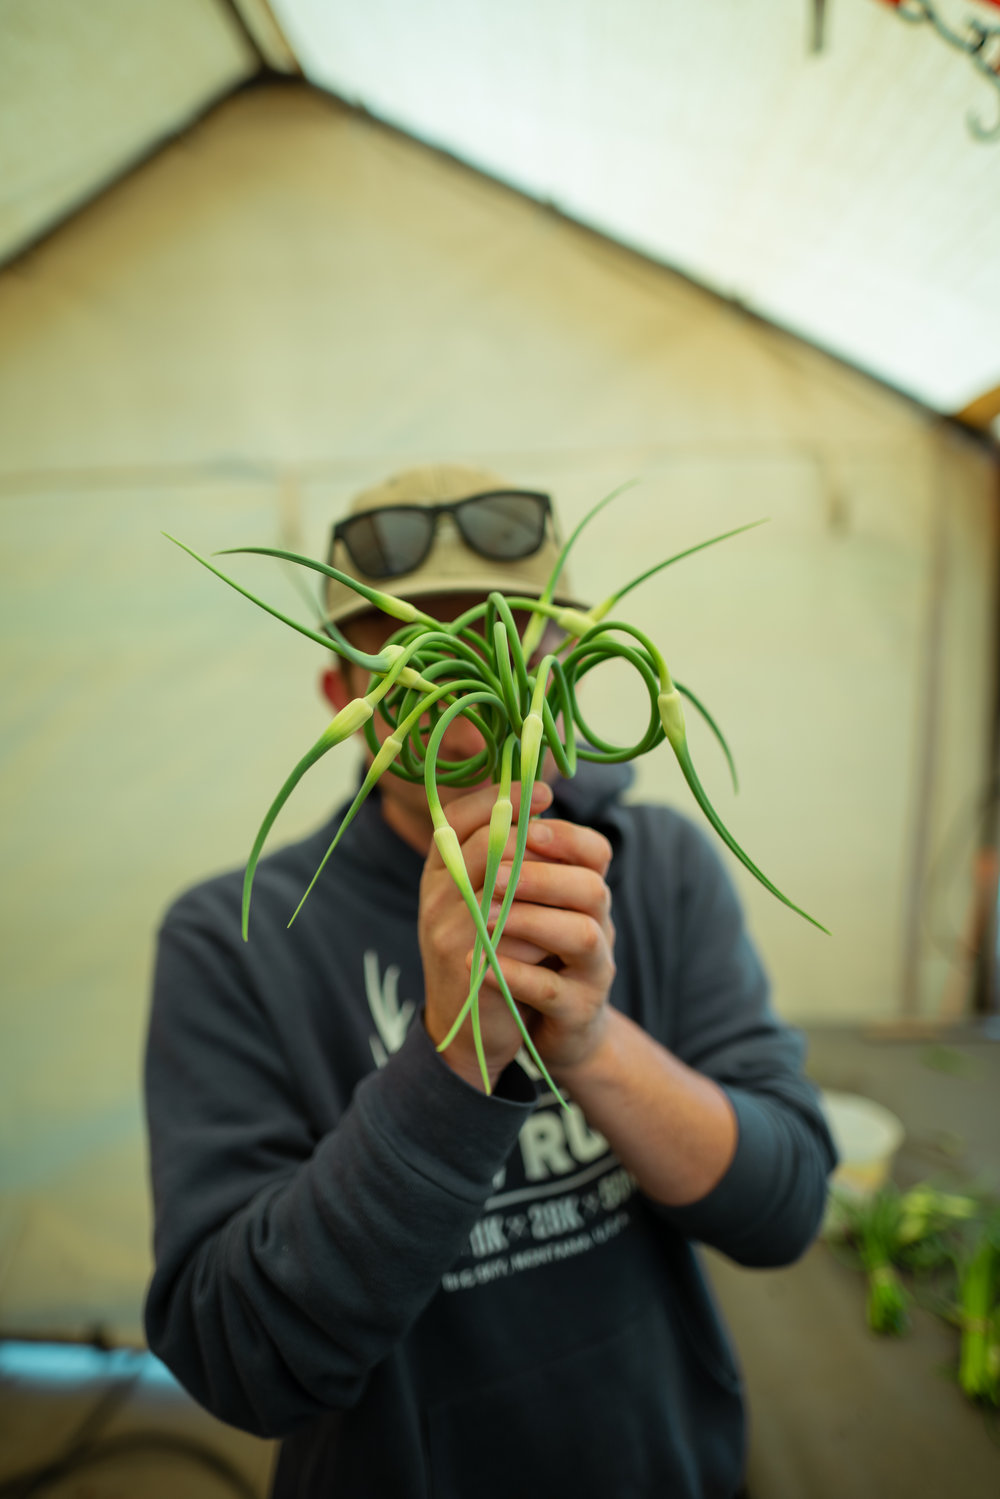 Zach Altman with garlic scapes at Sprig & Root Farm in Clarkston, Montana.